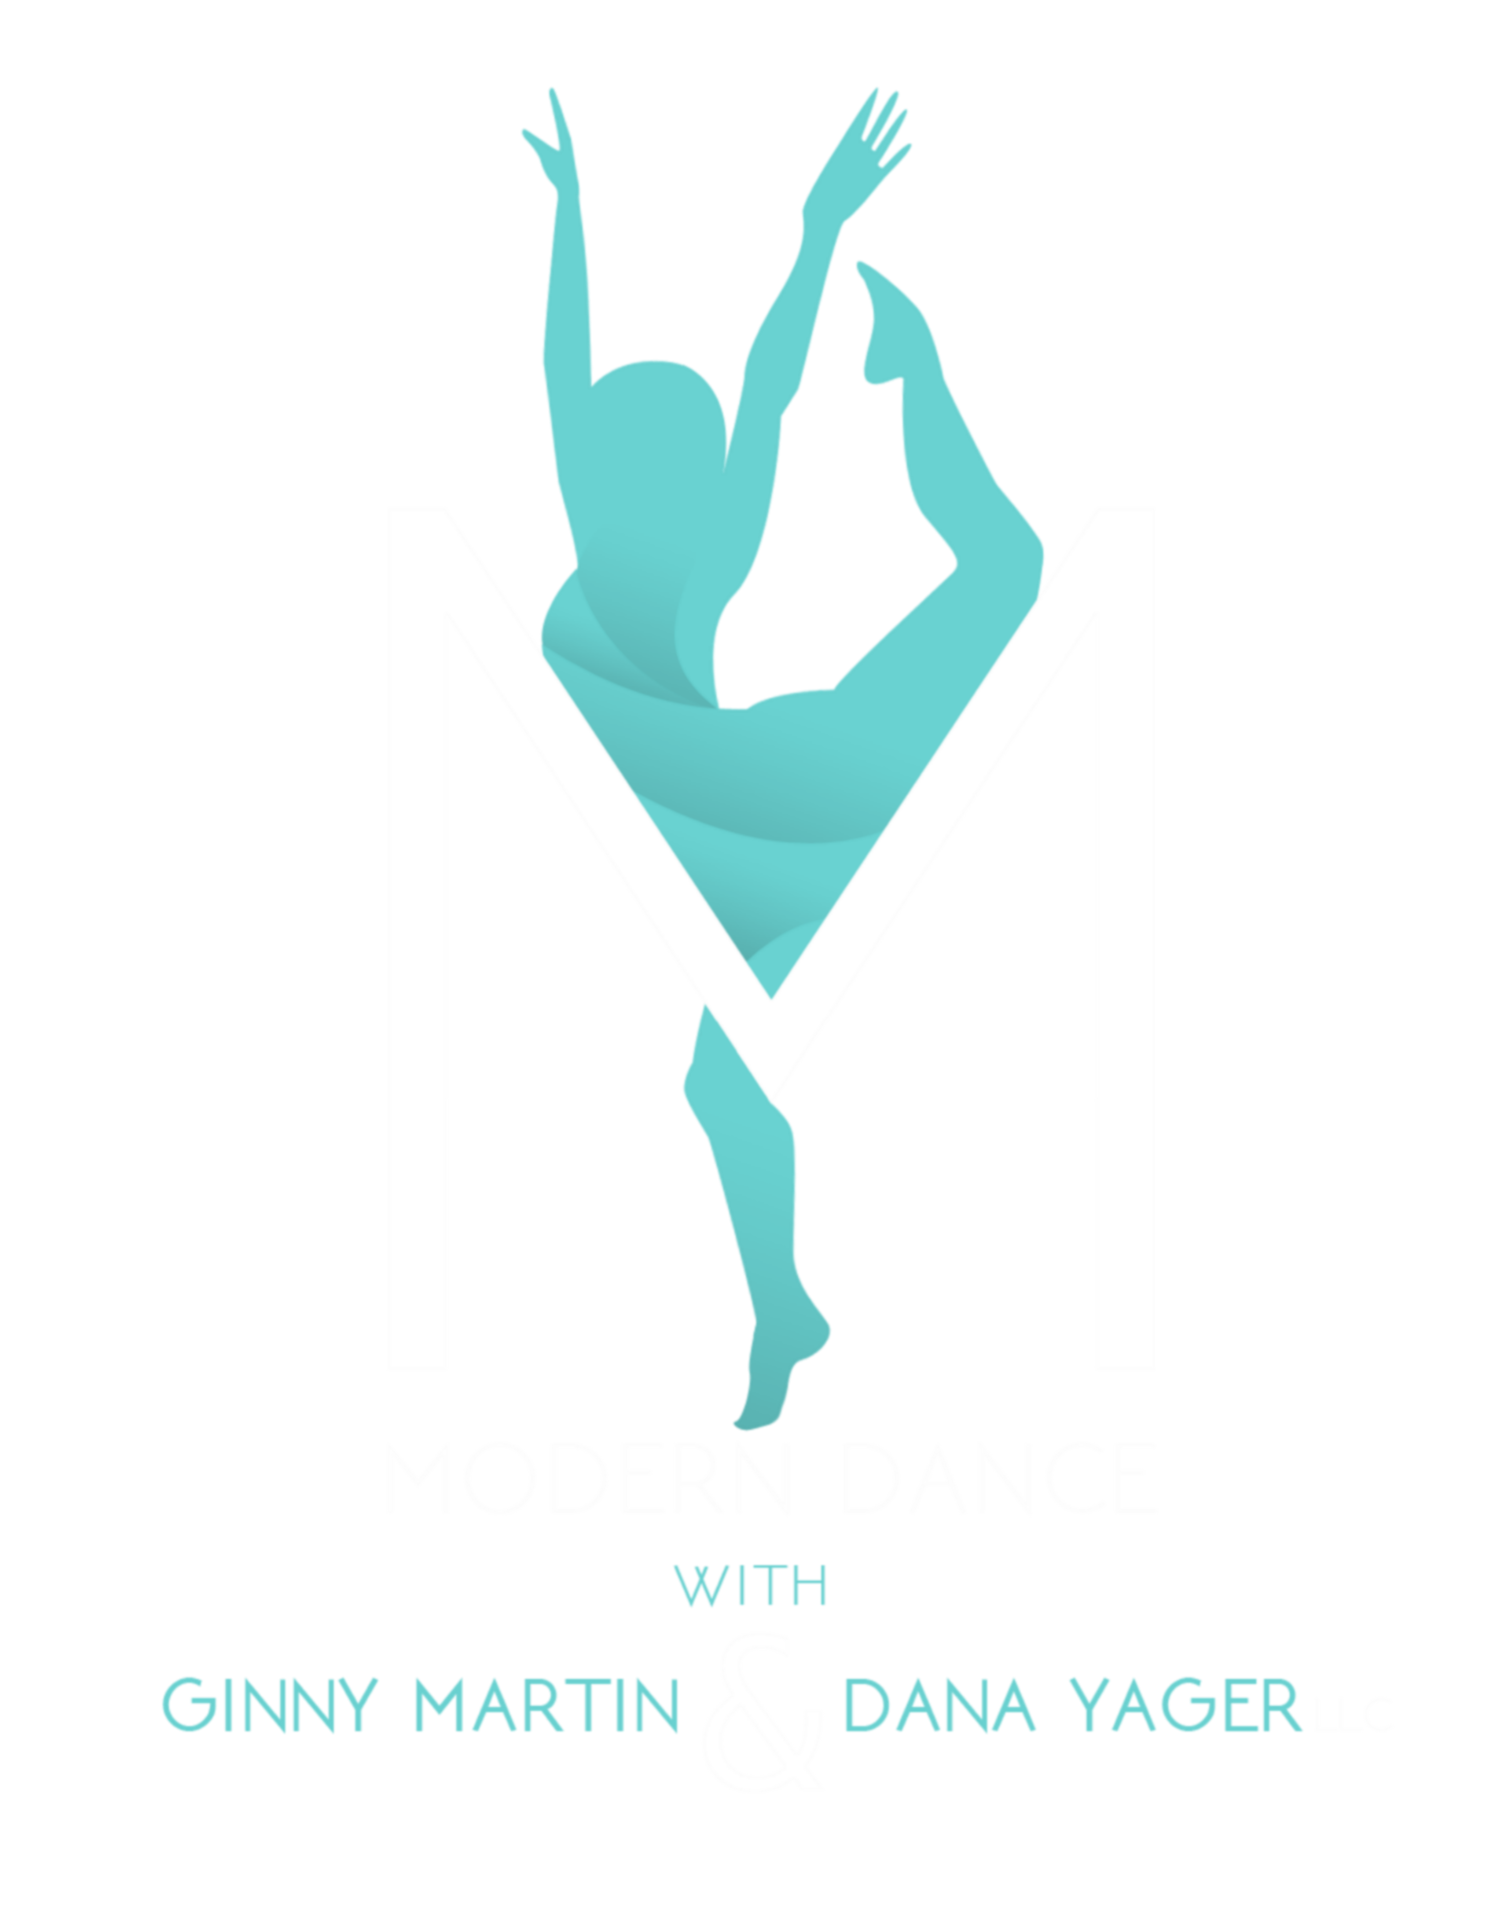 Modern Dance with Ginny Martin and Dana Yager, LLC